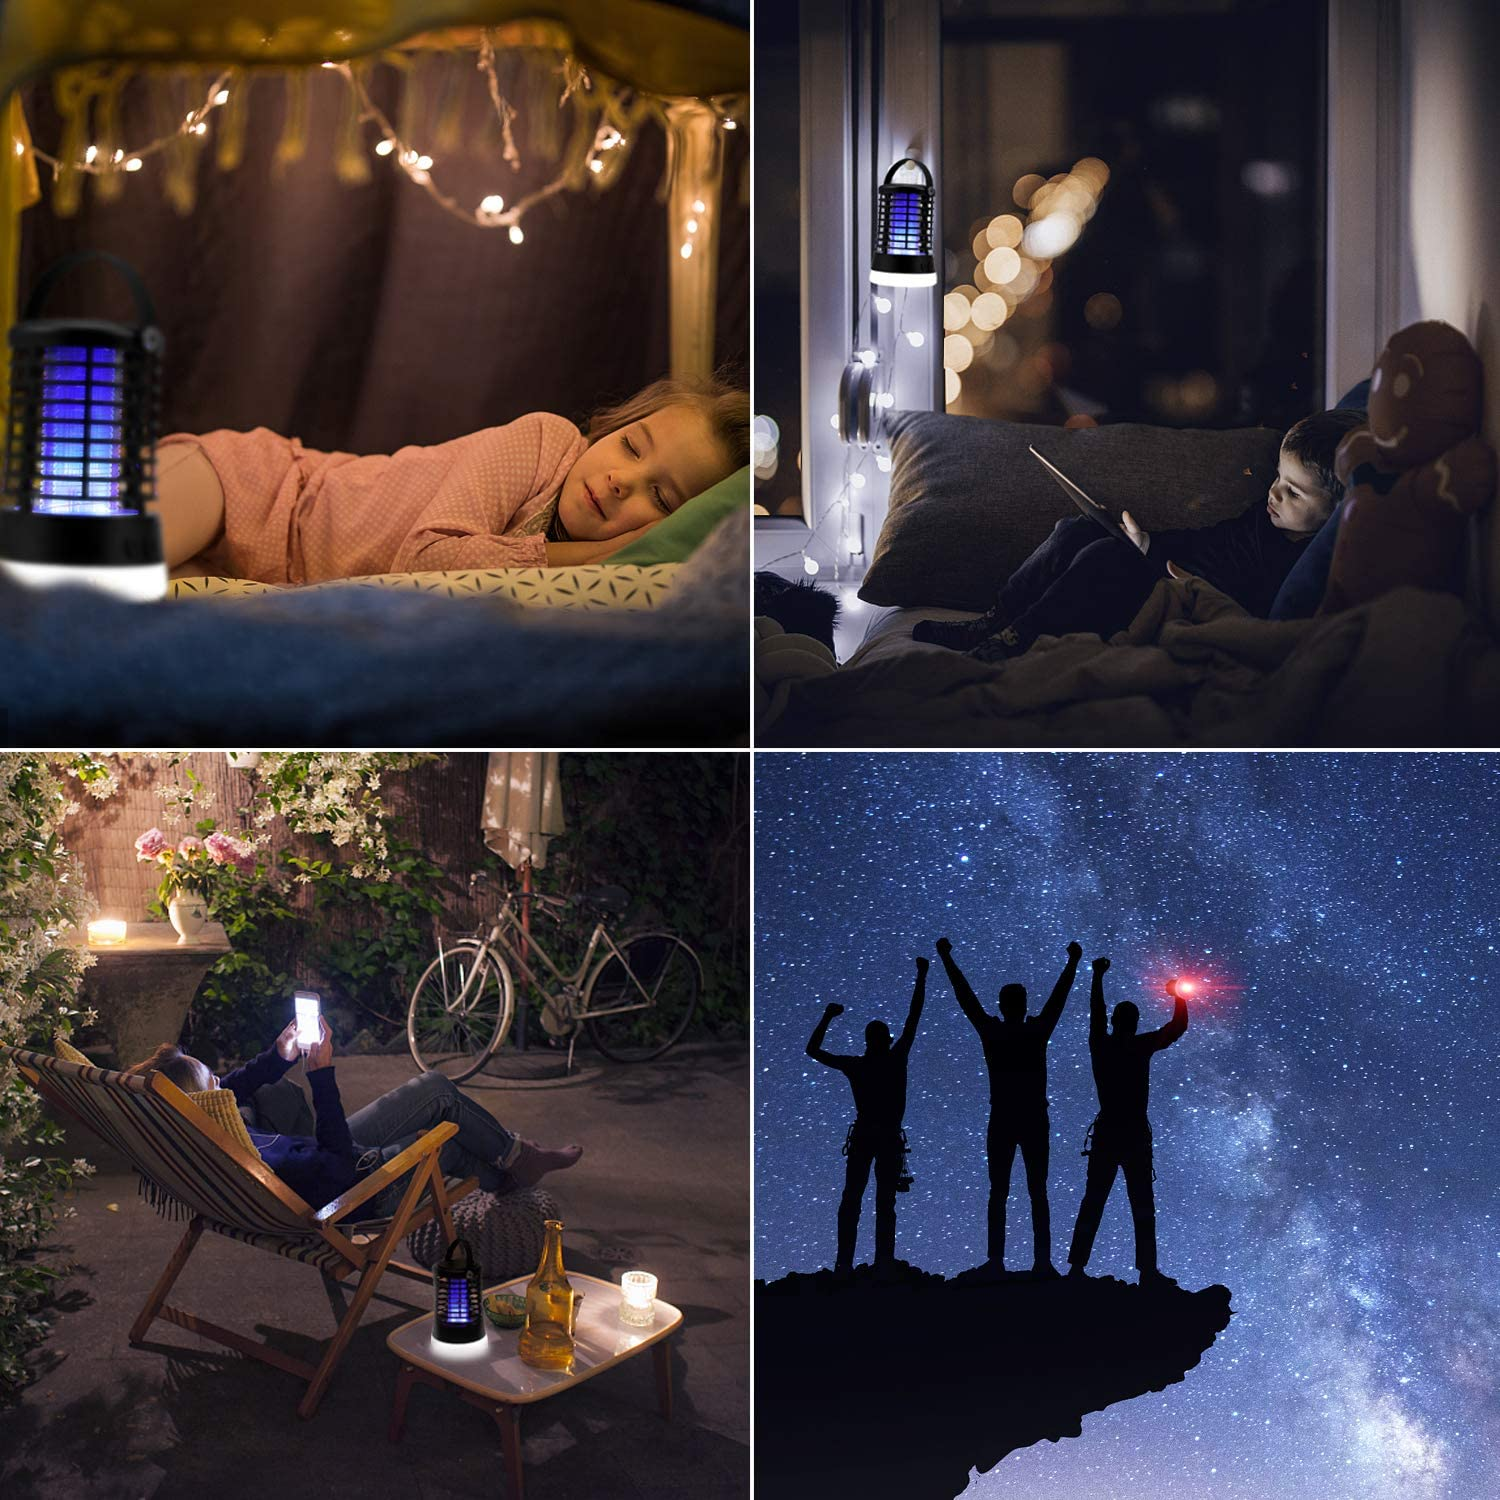 Bug Zapper Electric Mosquito Killer Insect Fly Trap Mosquito Attractant Trap Control with Camping Lamp for Indoor Outdoor Backyard Patio Camping Cordless and Hangable : Garden & Outdoor